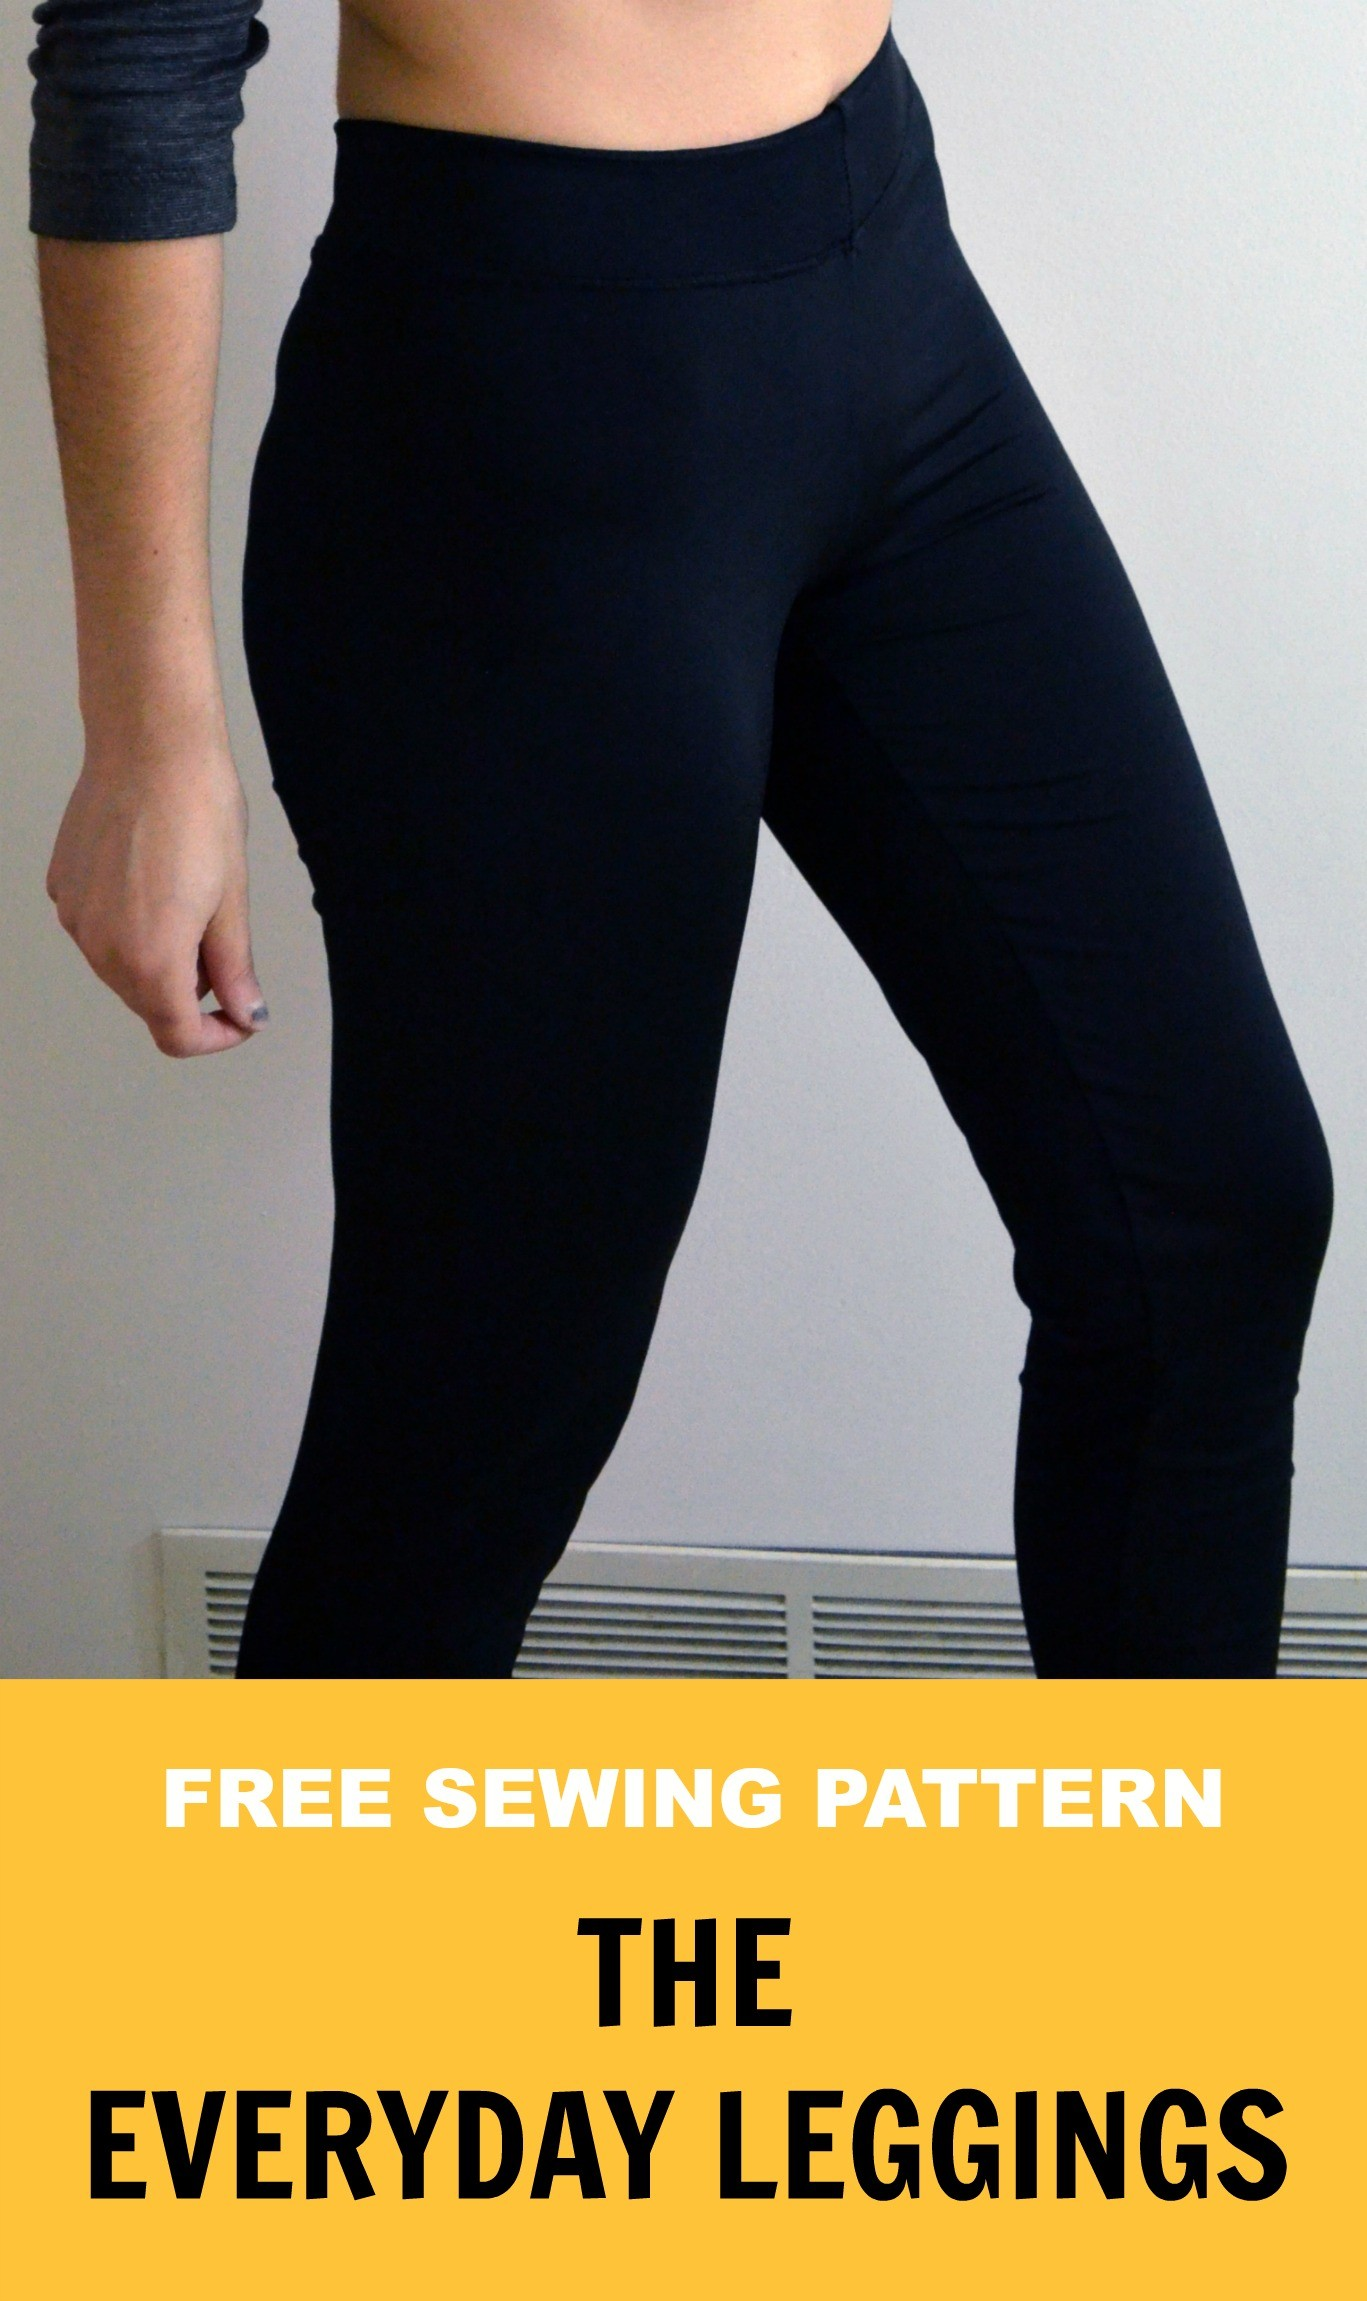 The everyday leggings on the cutting floor printable pdf sewing free sewing patterns free sewing patterns for women free sewing patterns online free jeuxipadfo Image collections